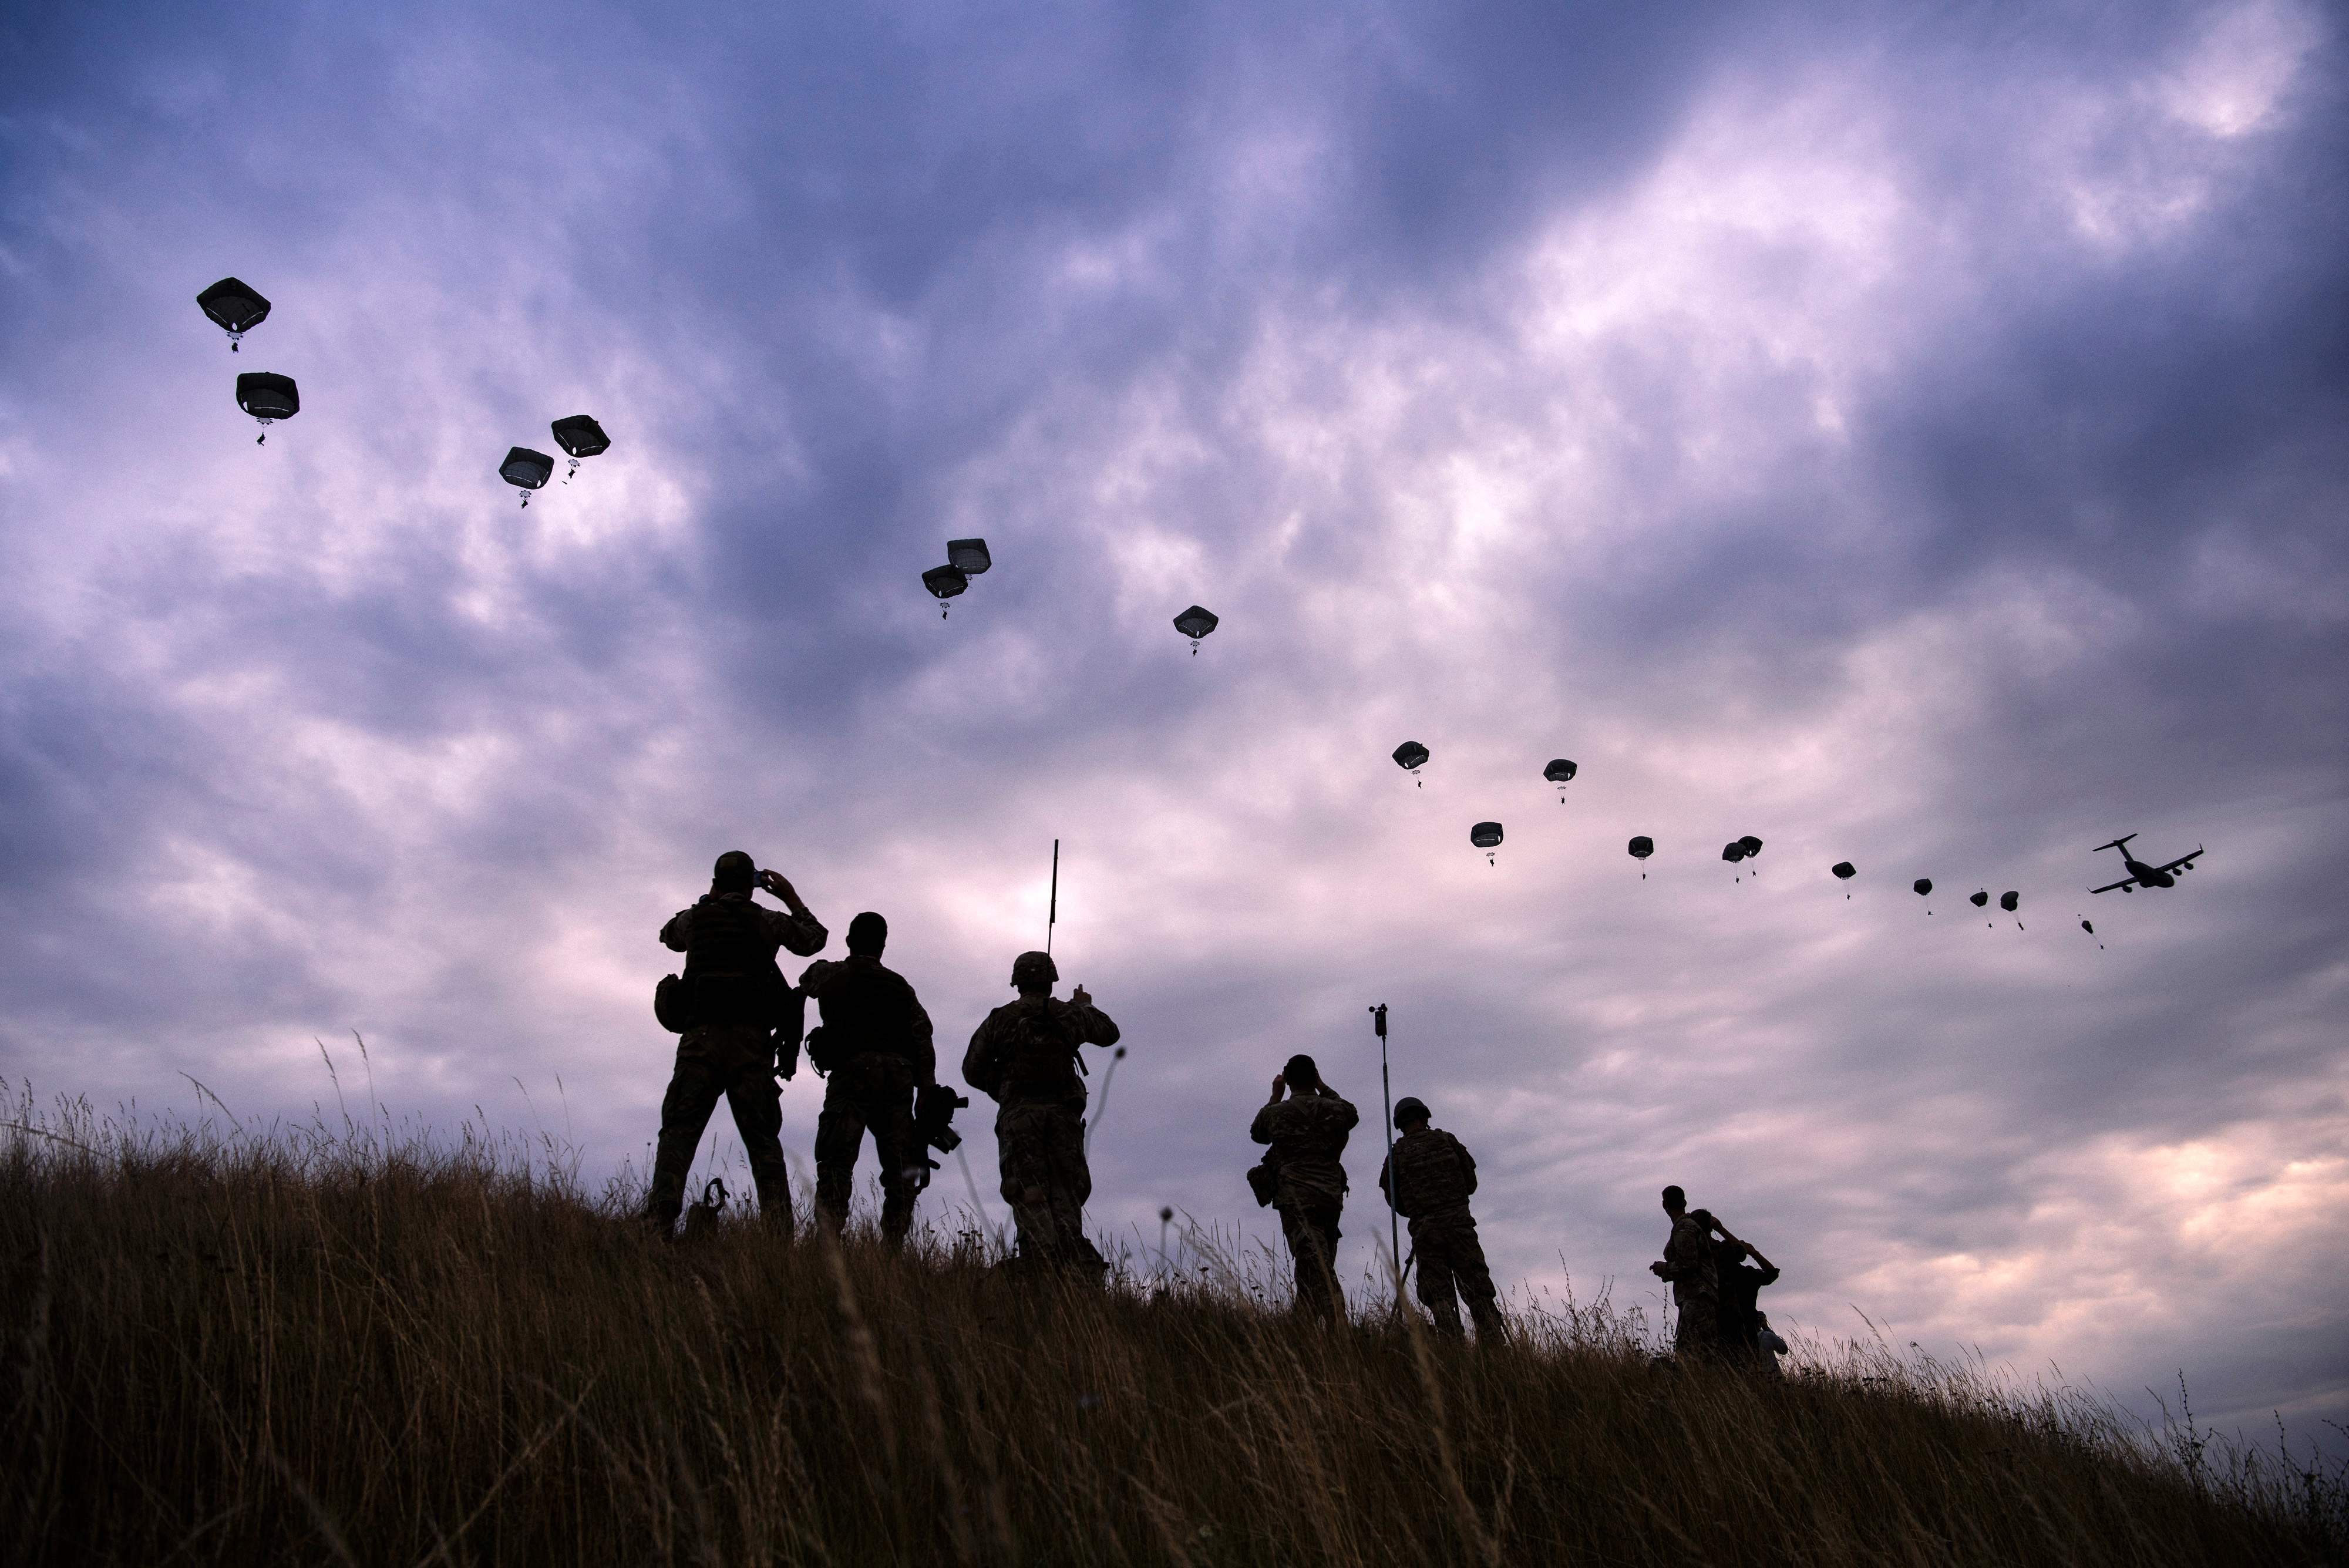 Soldiers siluetted against sky with parachuters